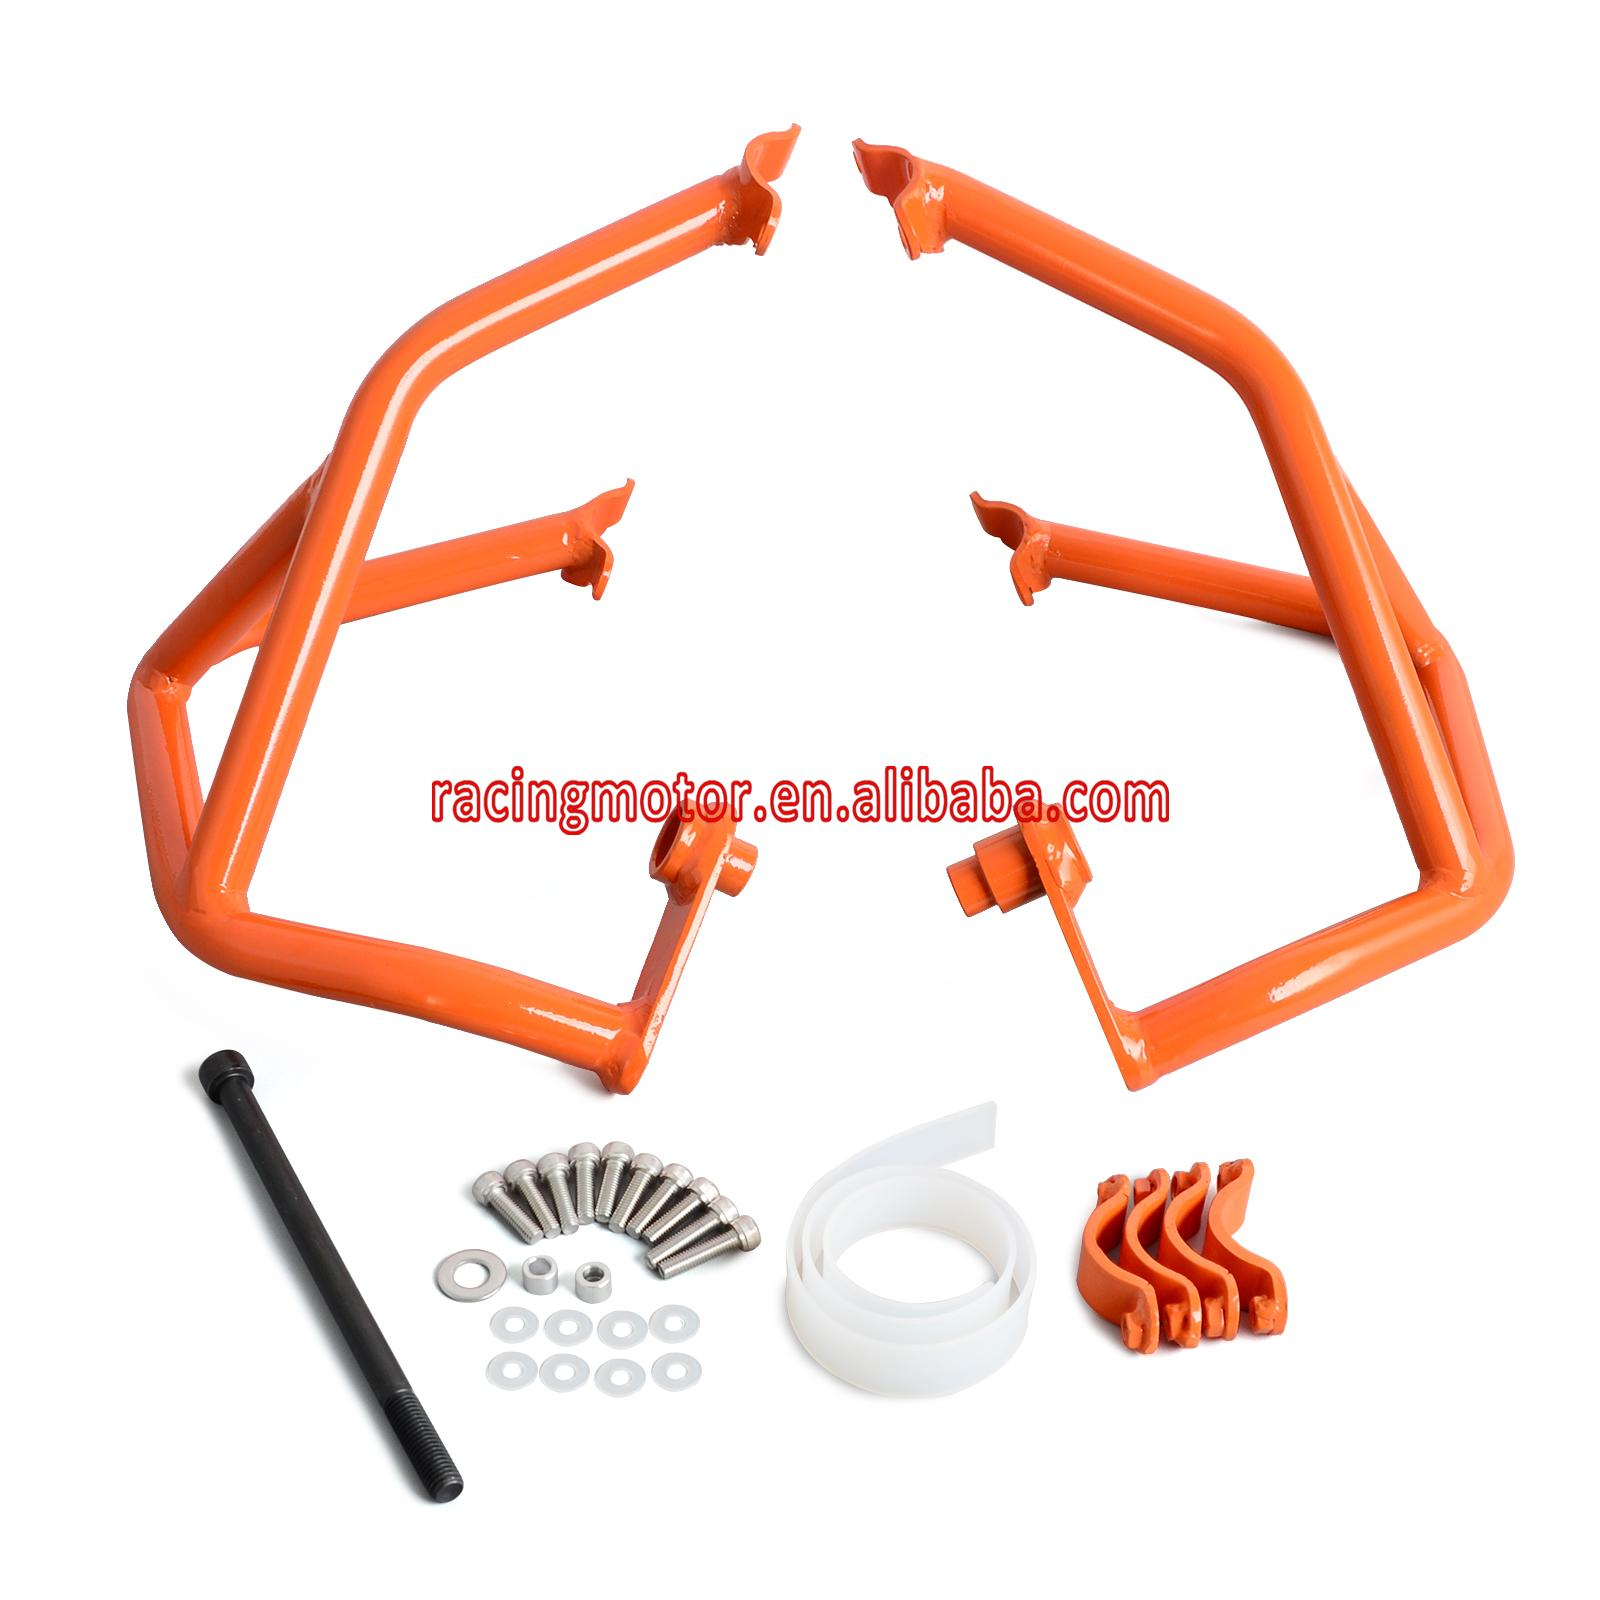 Motorcycle Engine Guards Protector Crash Bars for KTM LC4 690 Duke/R 2012 2013 2014 2015 2016 nicecnc front rear axle fork slider crash protector pads for ktm 690 duke r smr smc sm enduro 2012 2013 2014 2015 2016 2017 2018